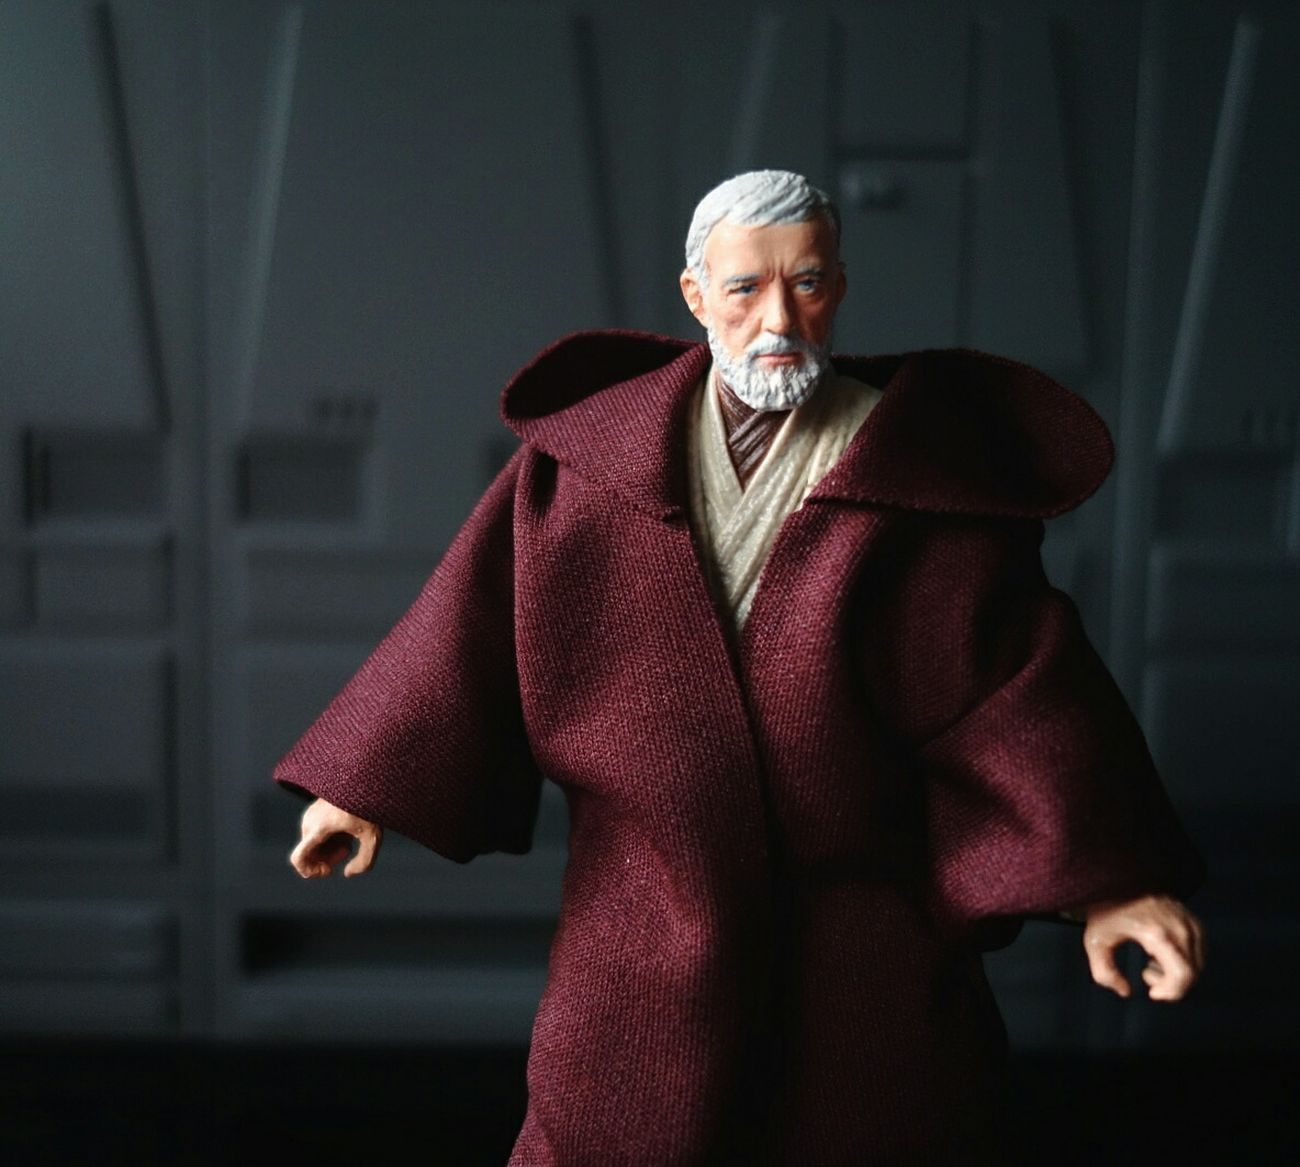 Return of the Jedi Benkenobi Obiwankenobi Anewhope Jedi StarWarsCollection Starwarstoys Custompaint Starwars